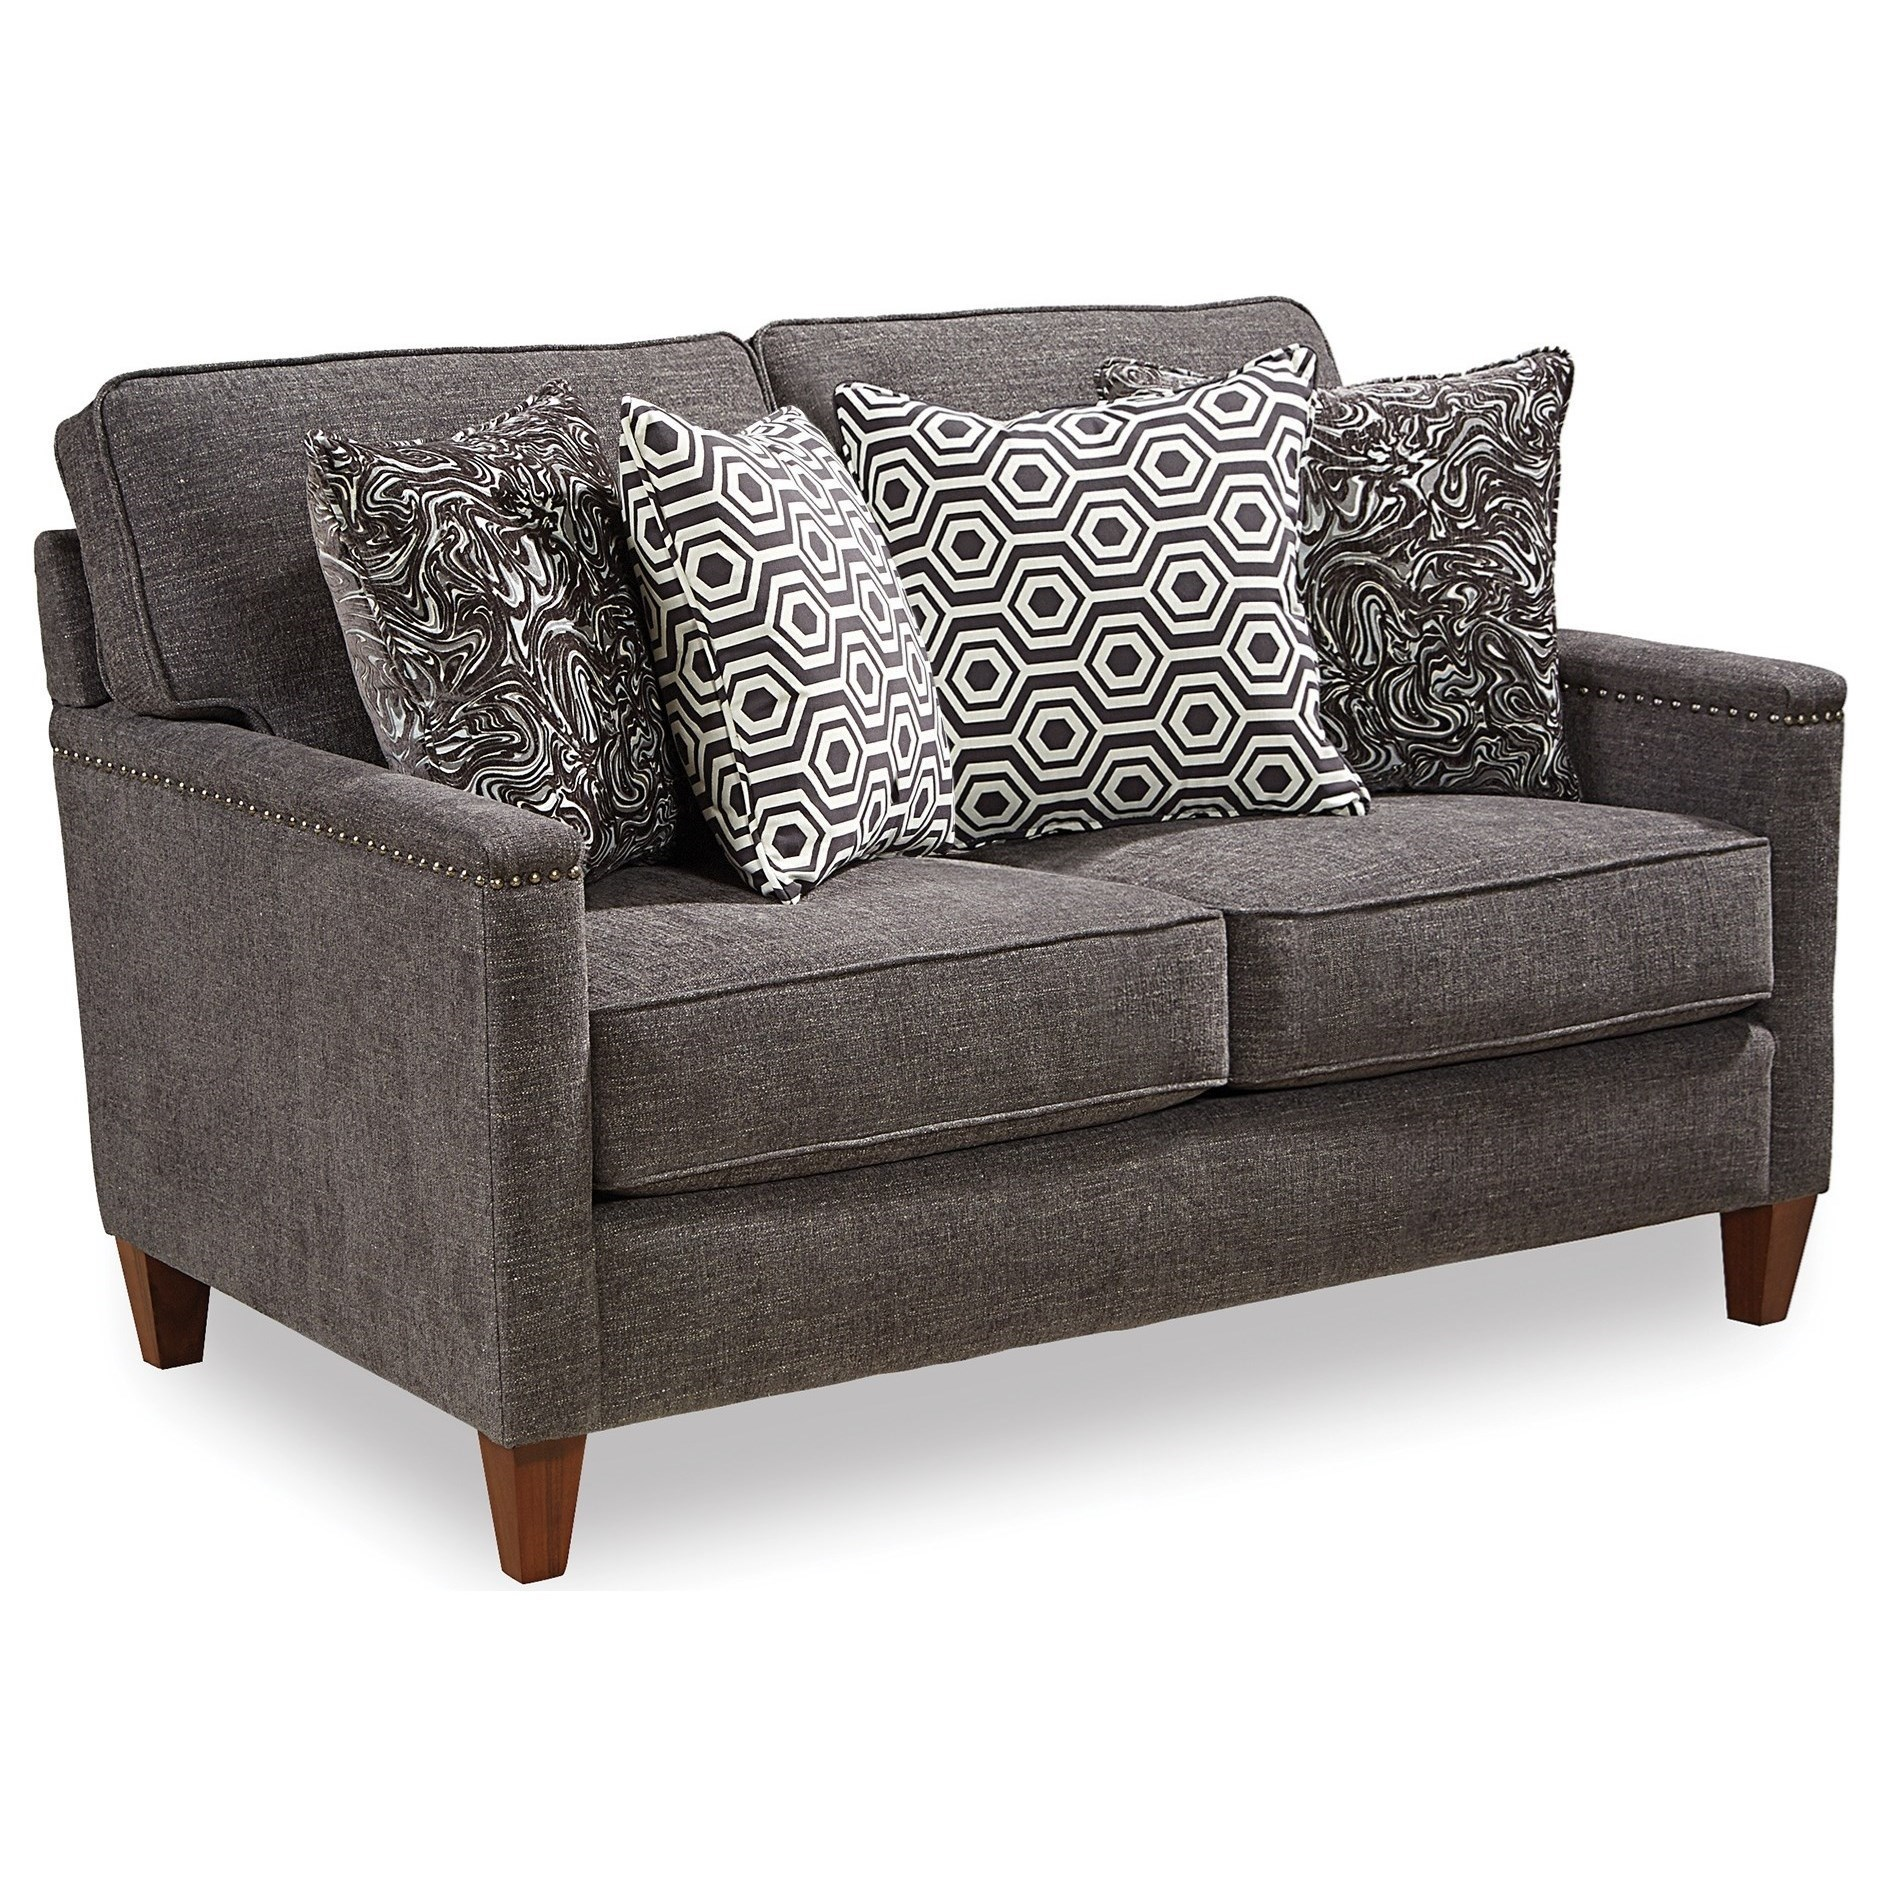 Broyhill Furniture LawsonLoveseat